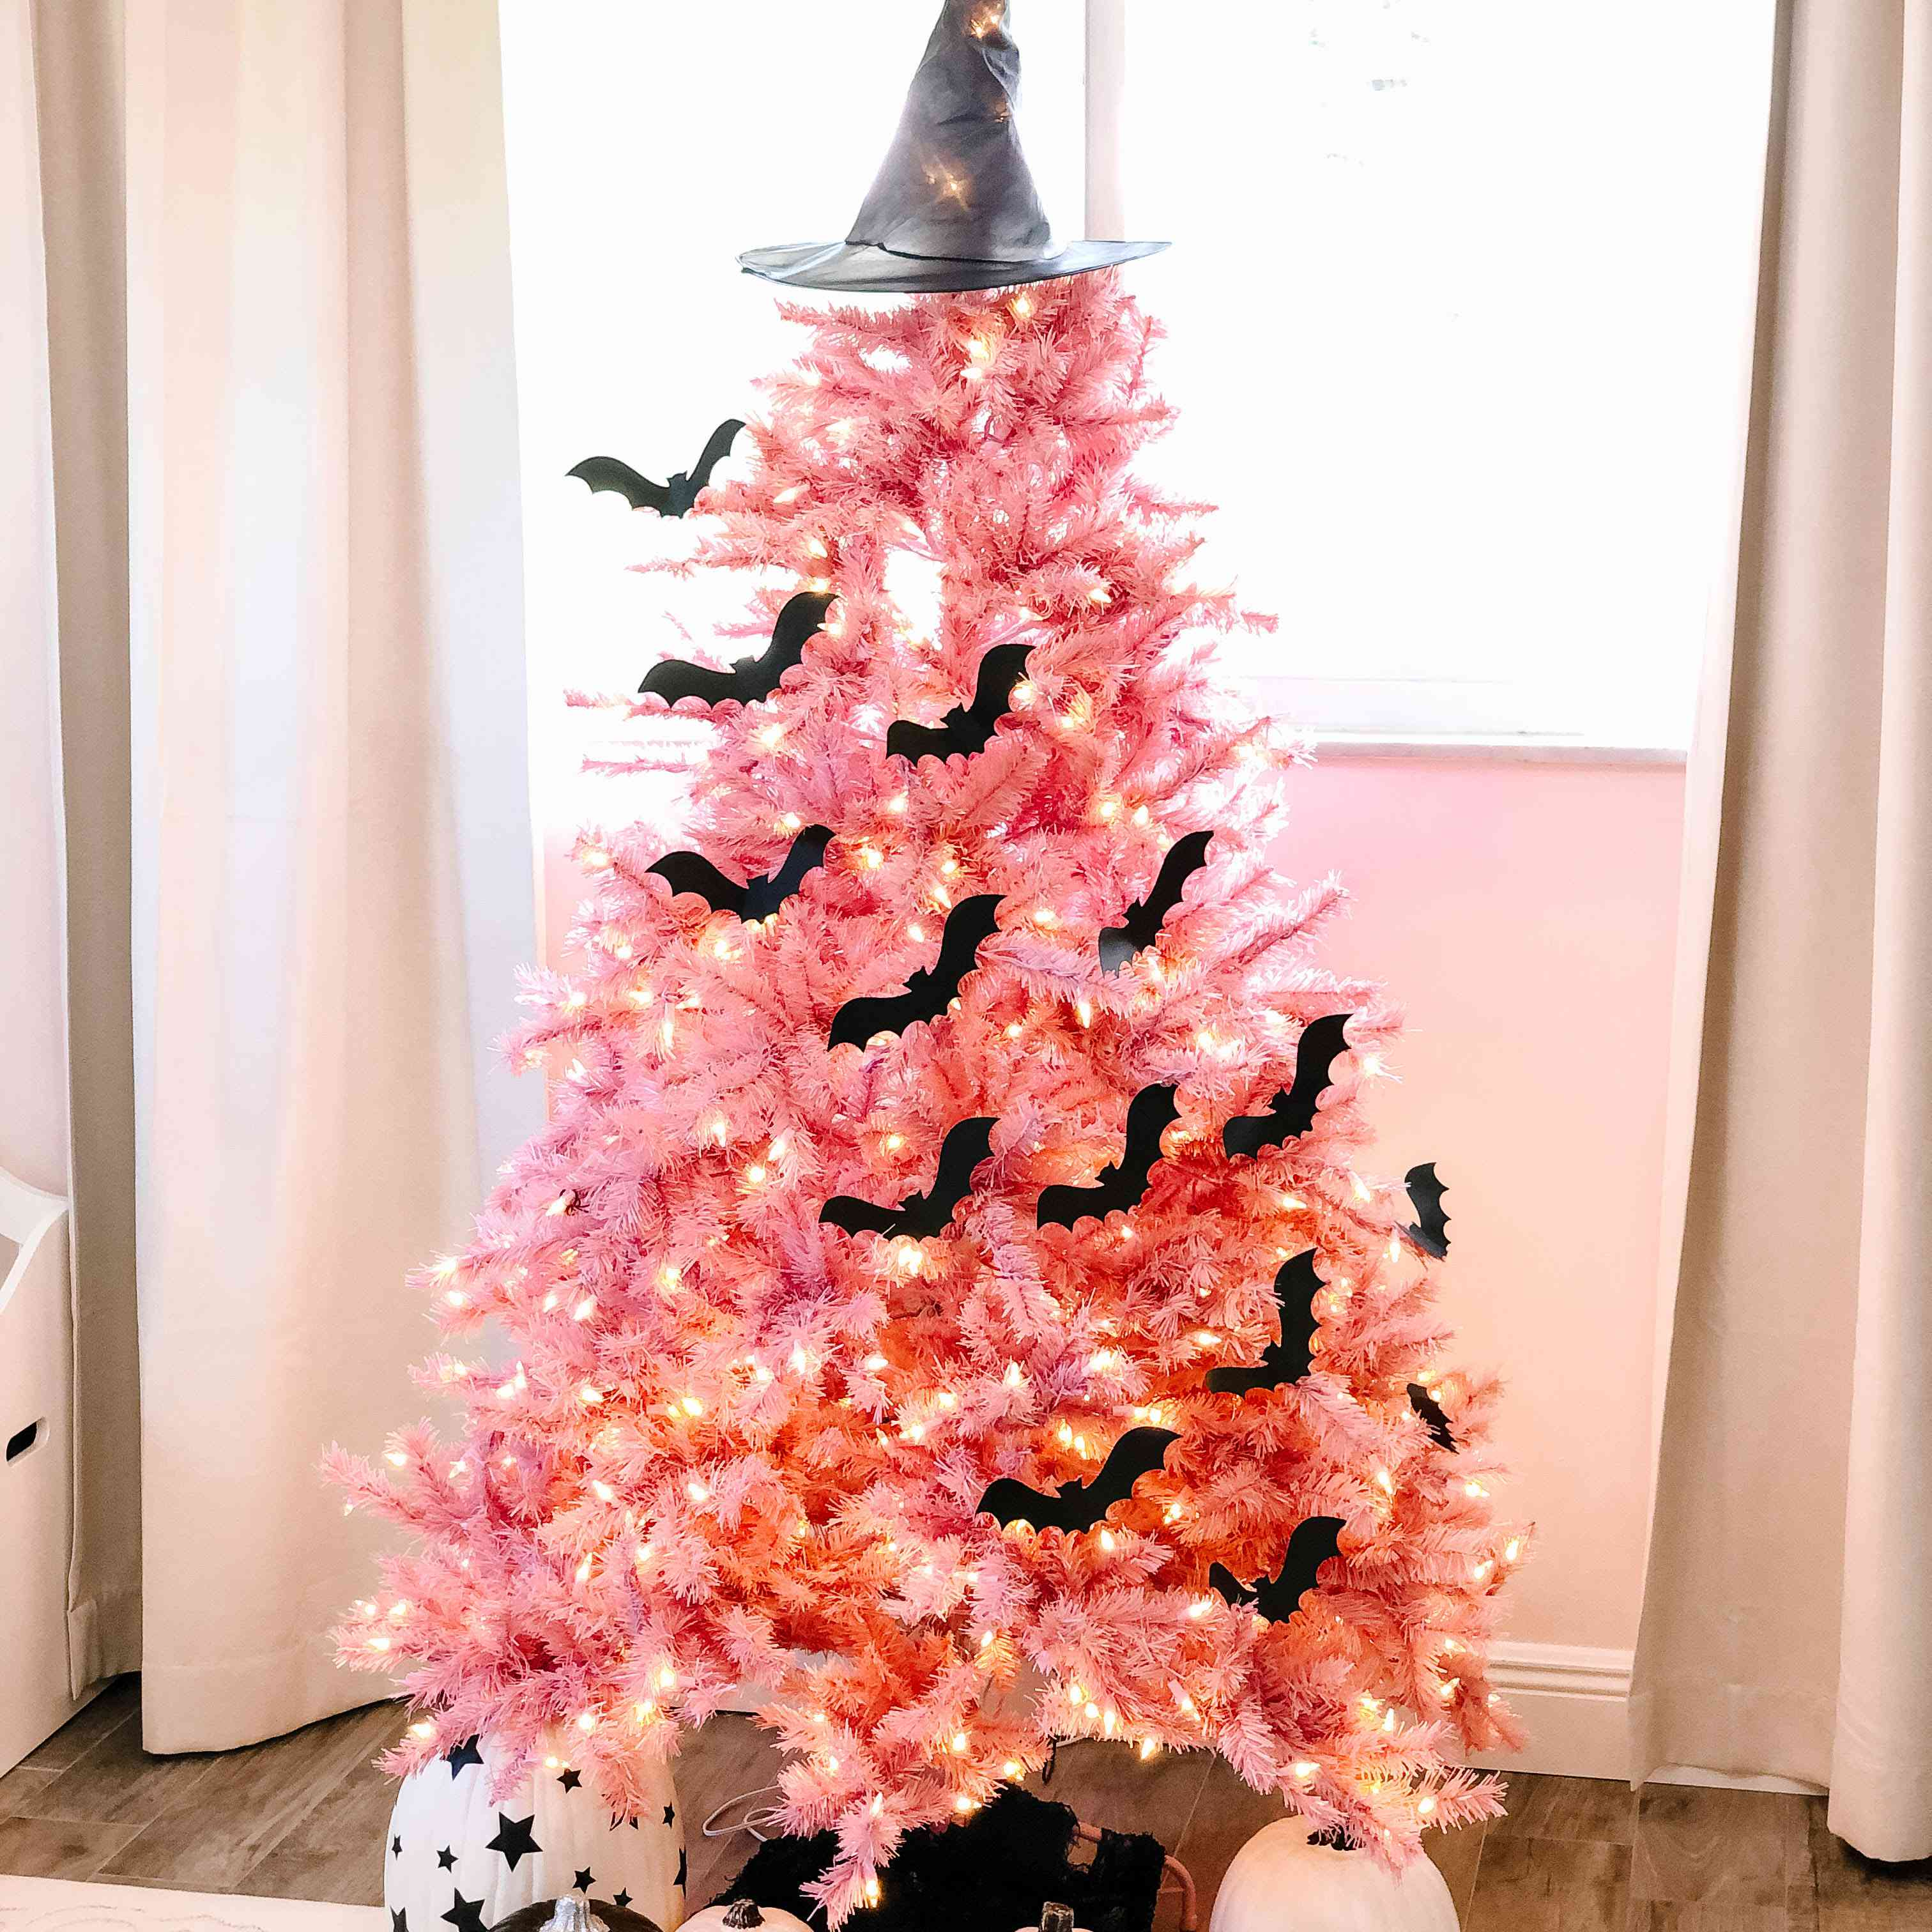 9 Halloween Trees That Will Make You Pull Out Your Christmas Tree Stat